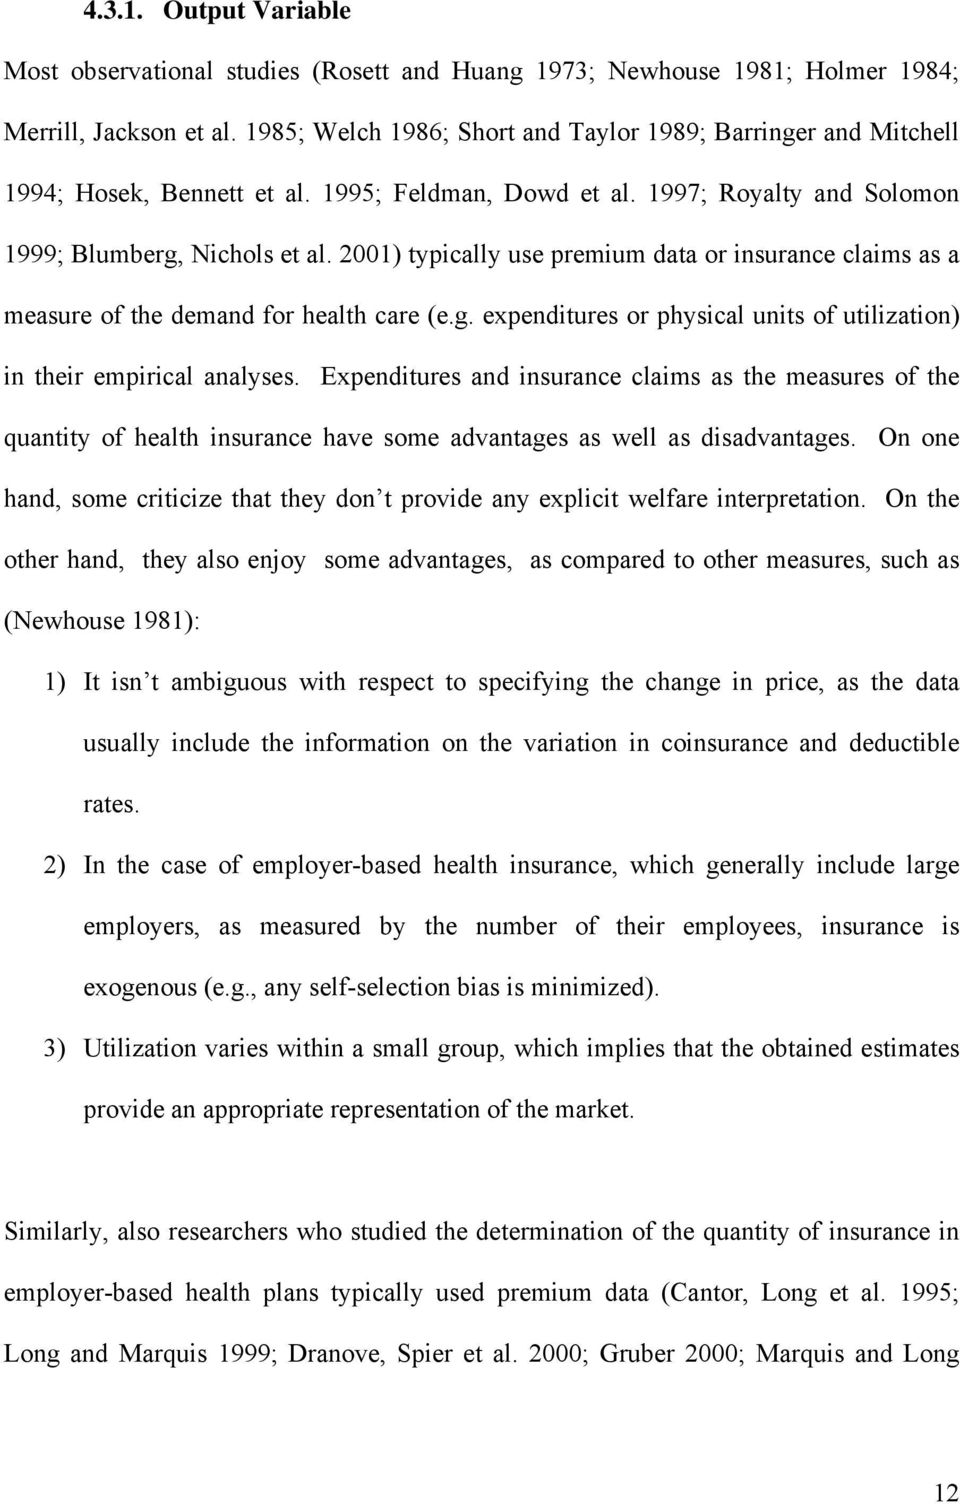 2001) typically use premium data or insurance claims as a measure of the demand for health care (e.g. expenditures or physical units of utilization) in their empirical analyses.